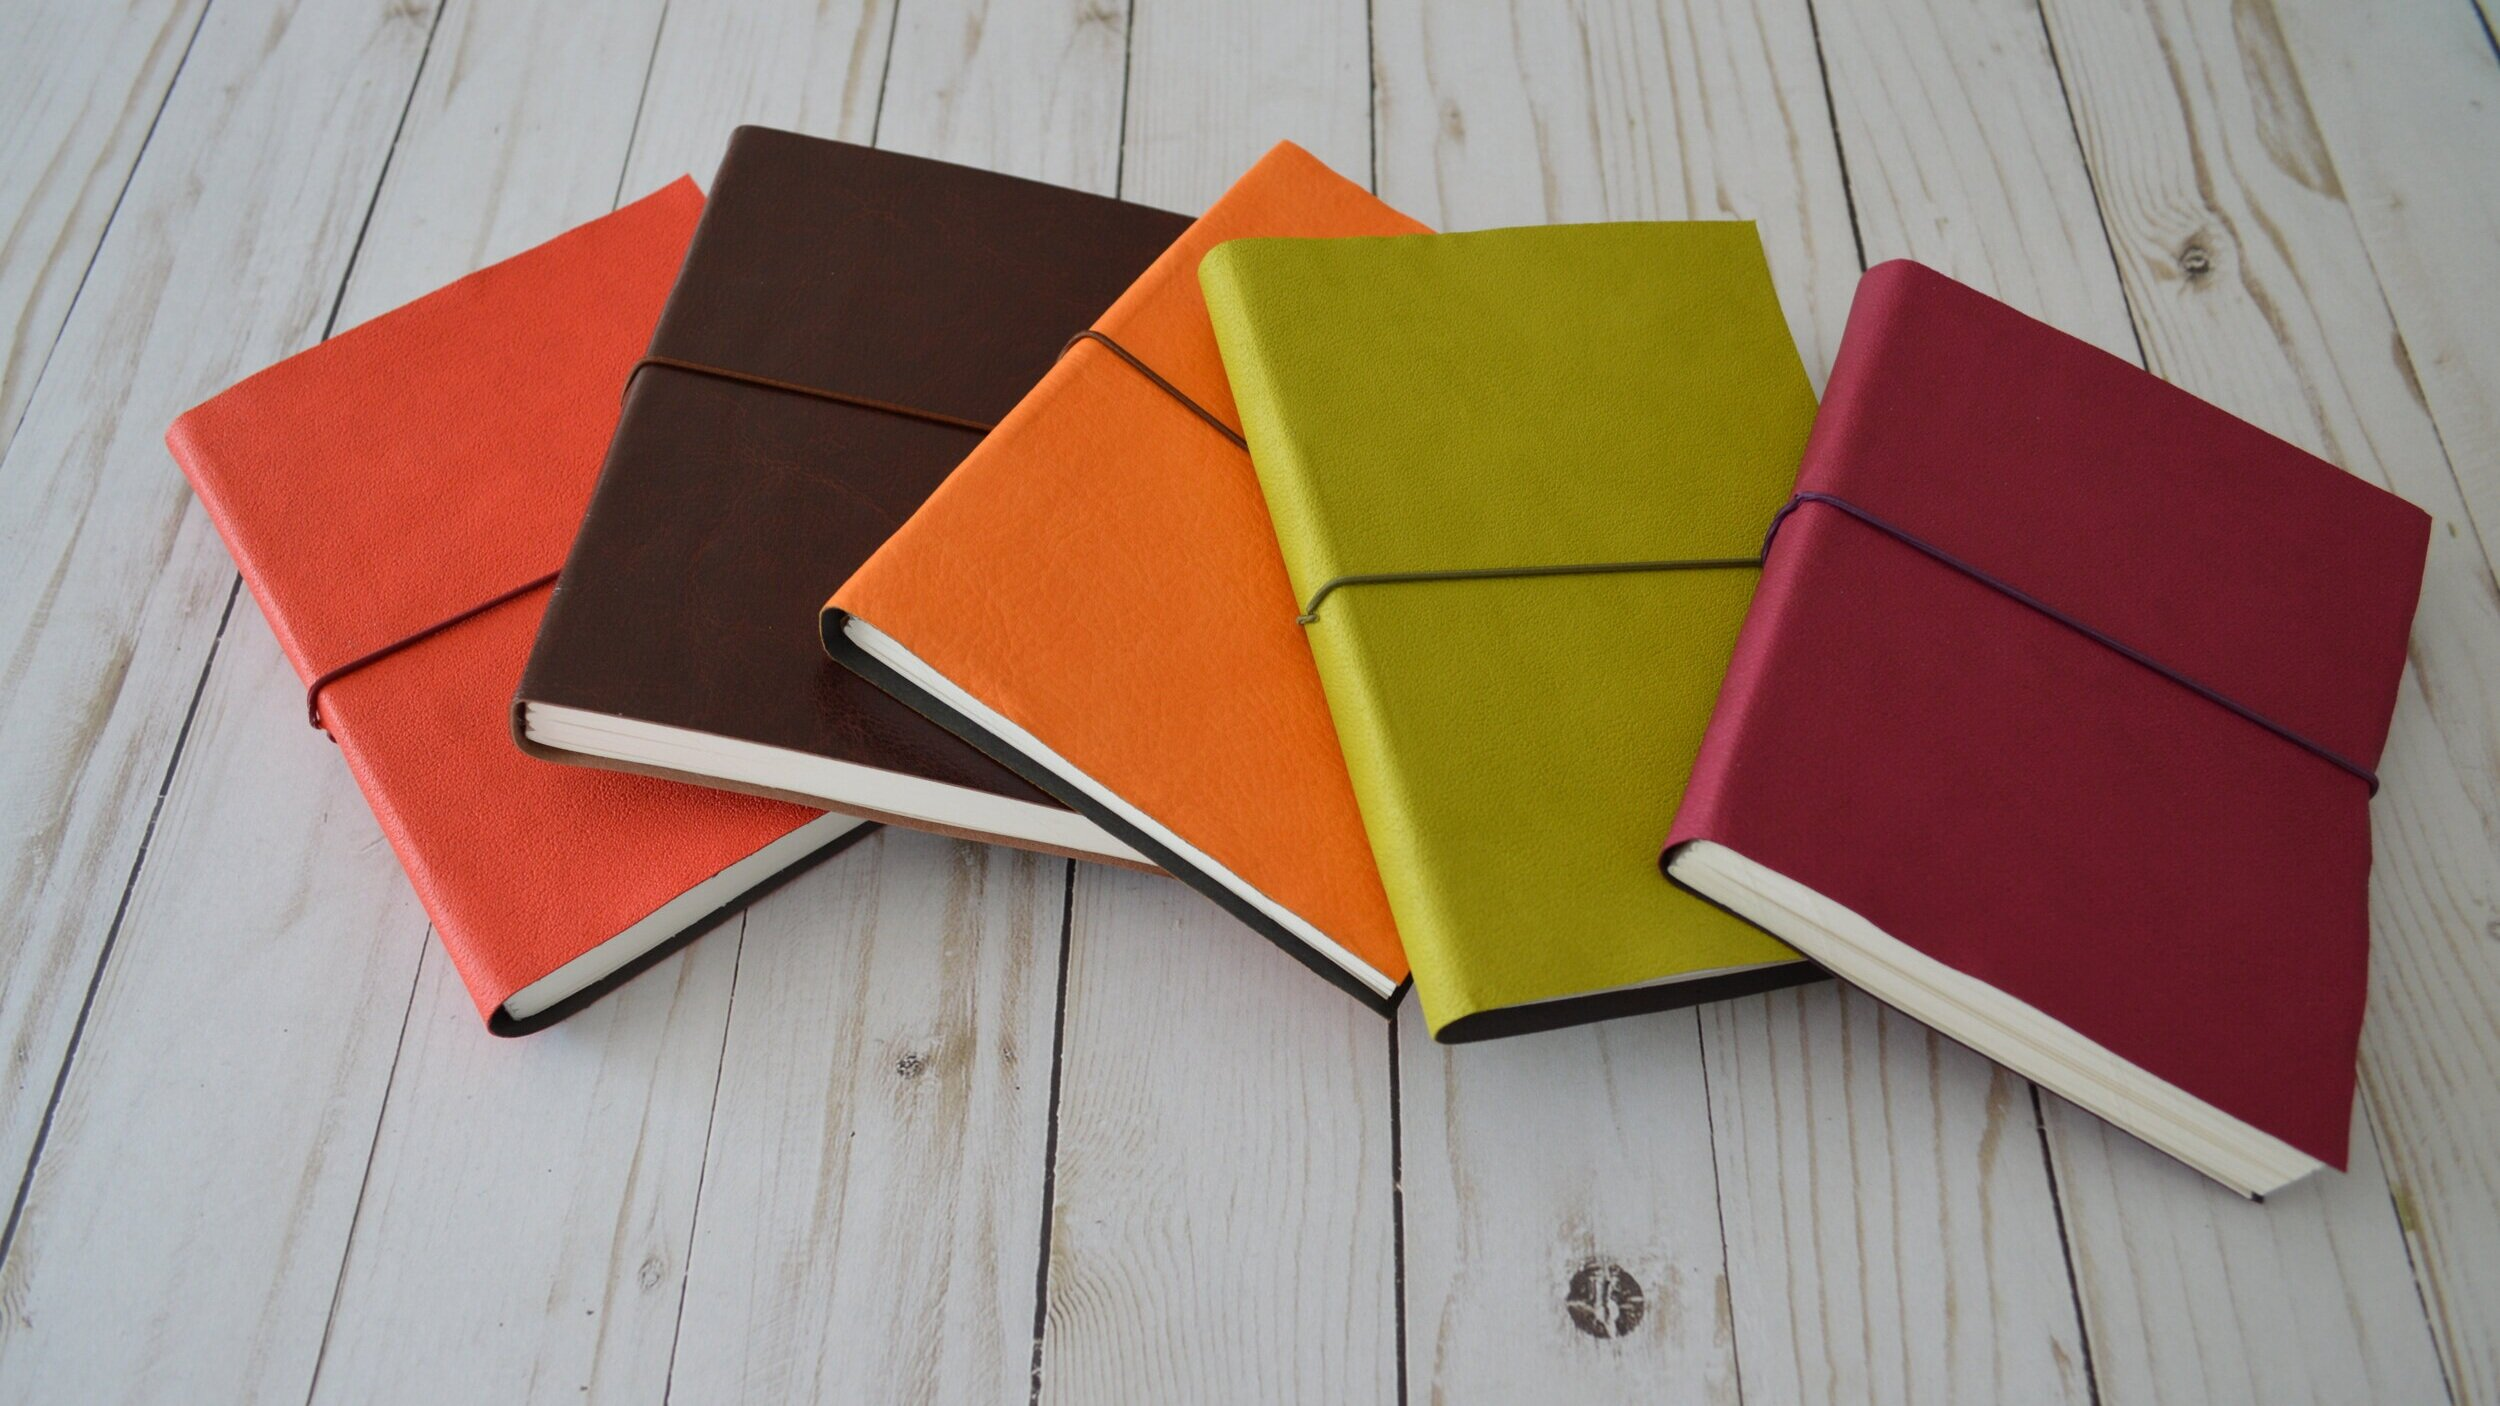 Soft-cover journals